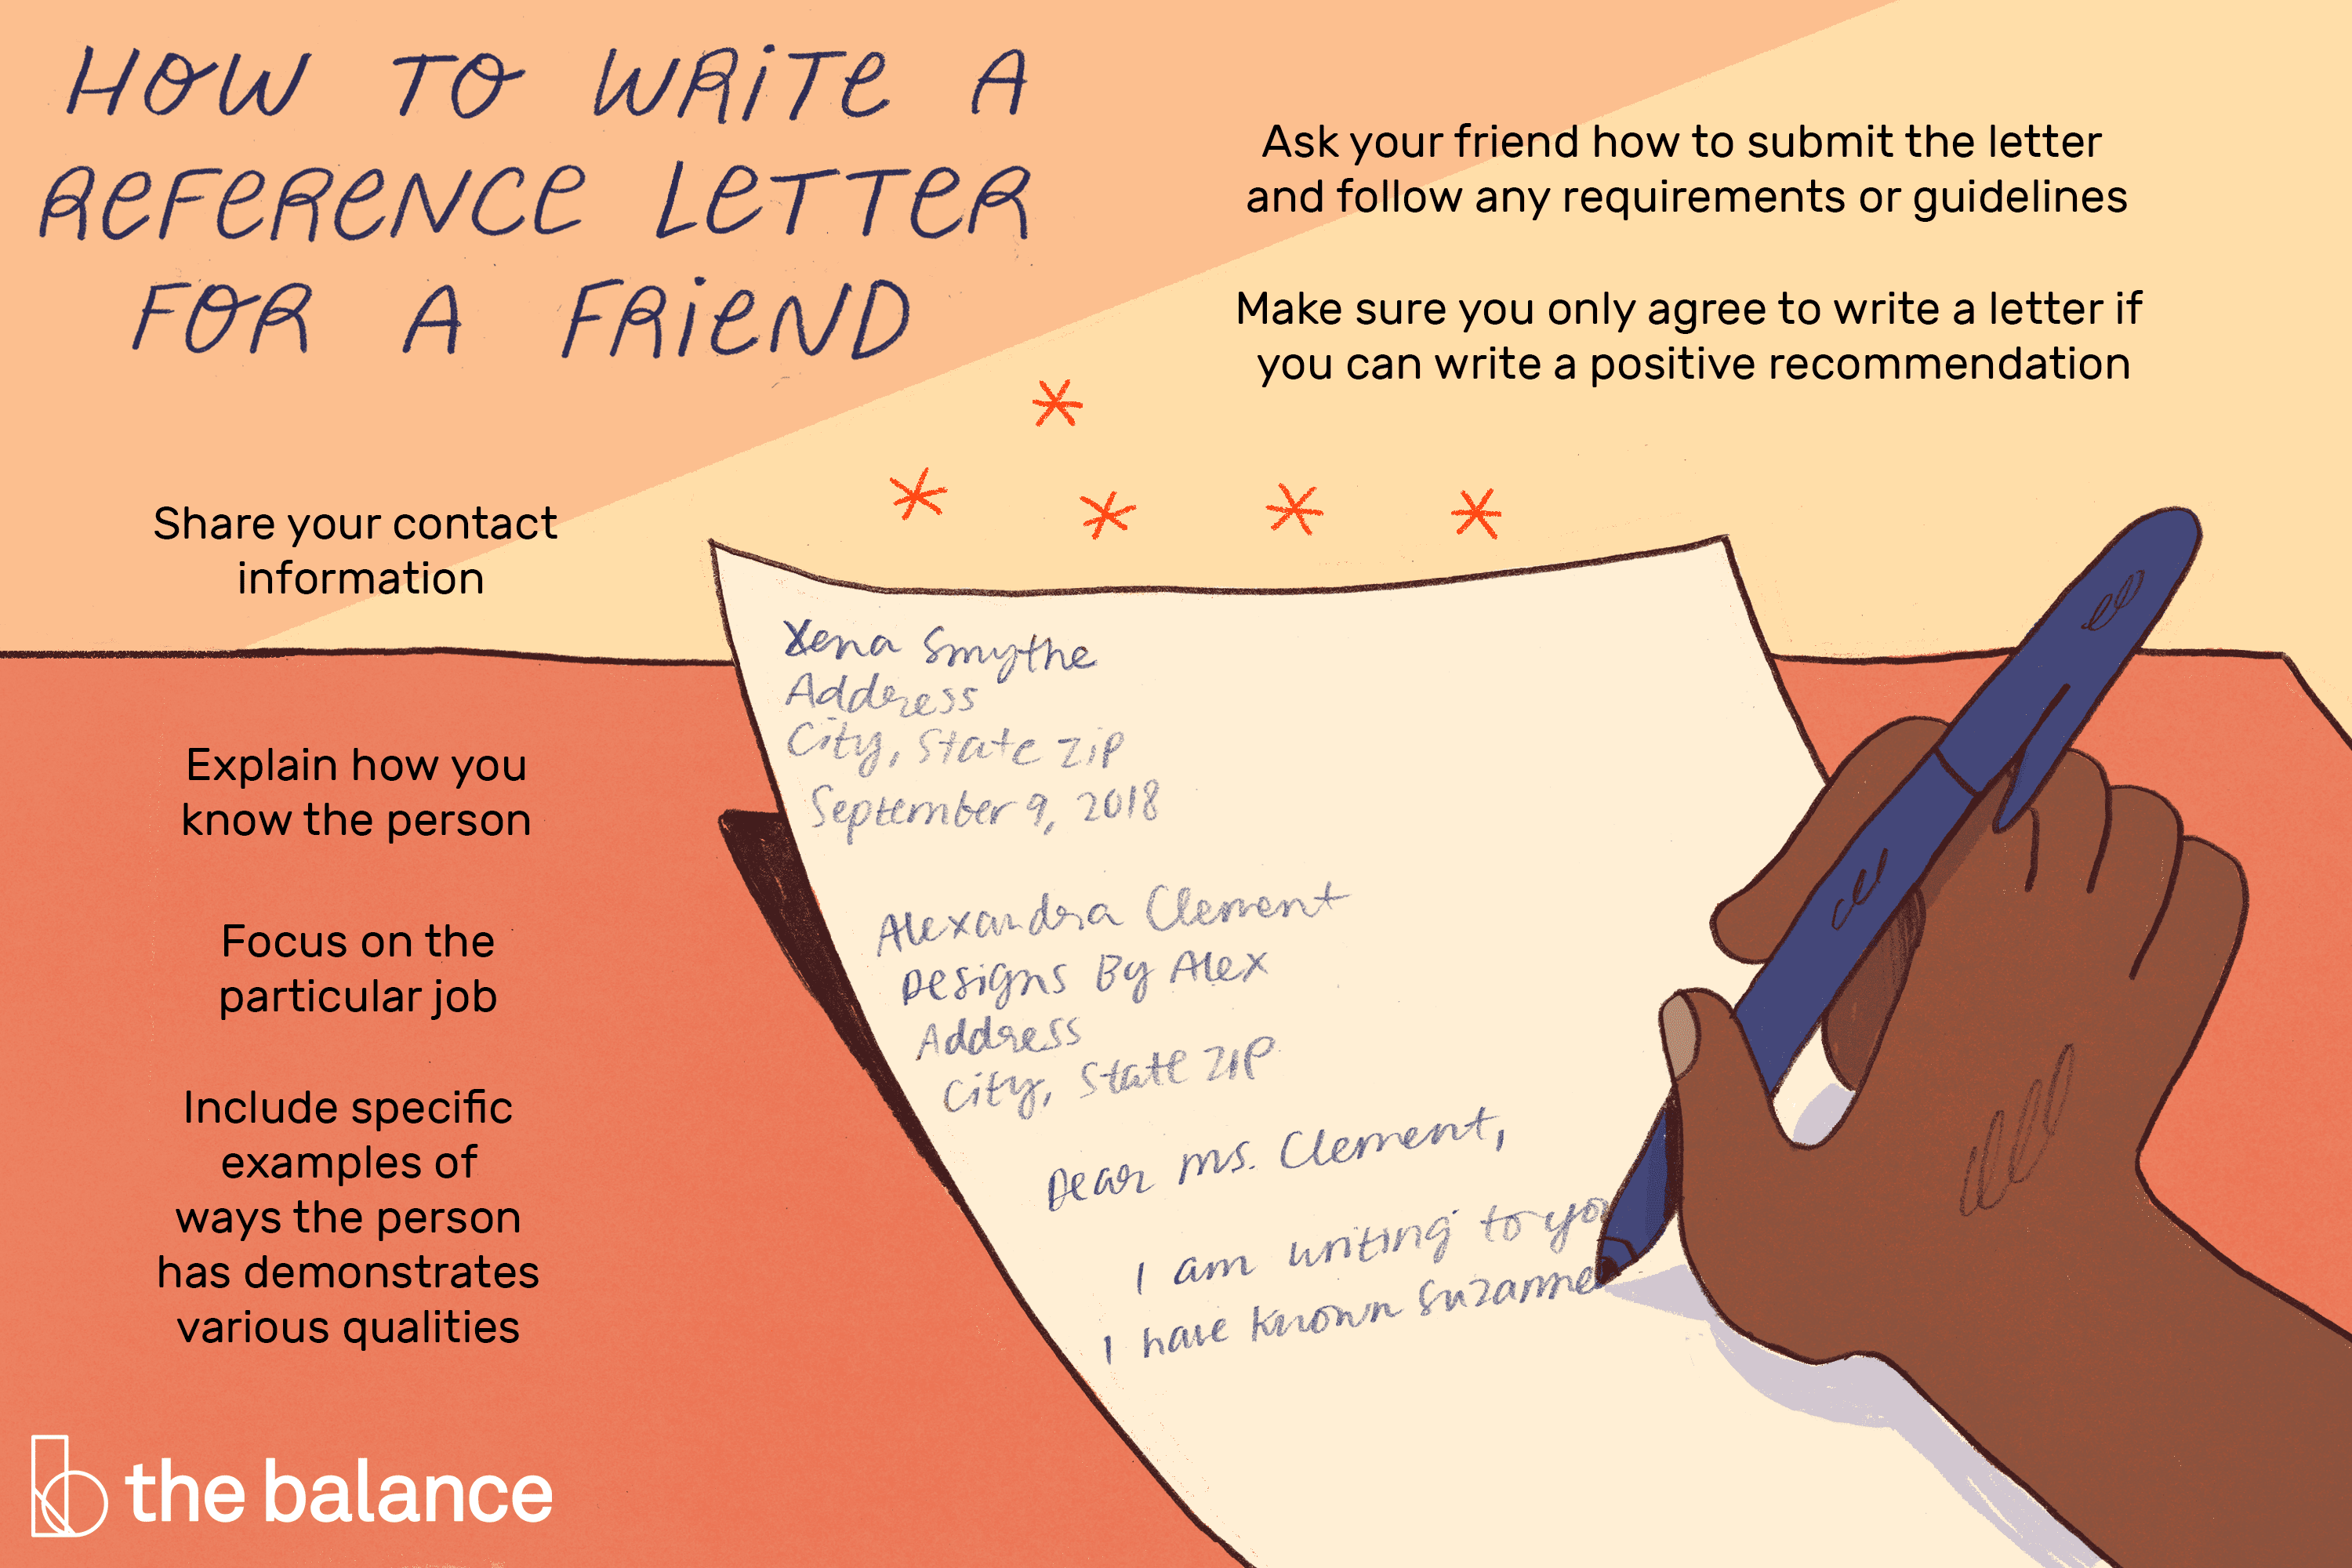 How-To-Write-A-Reference-Letter -For-A-Friend-2062922-Final-5Ba500Aa4Cedfd00252F0799.png